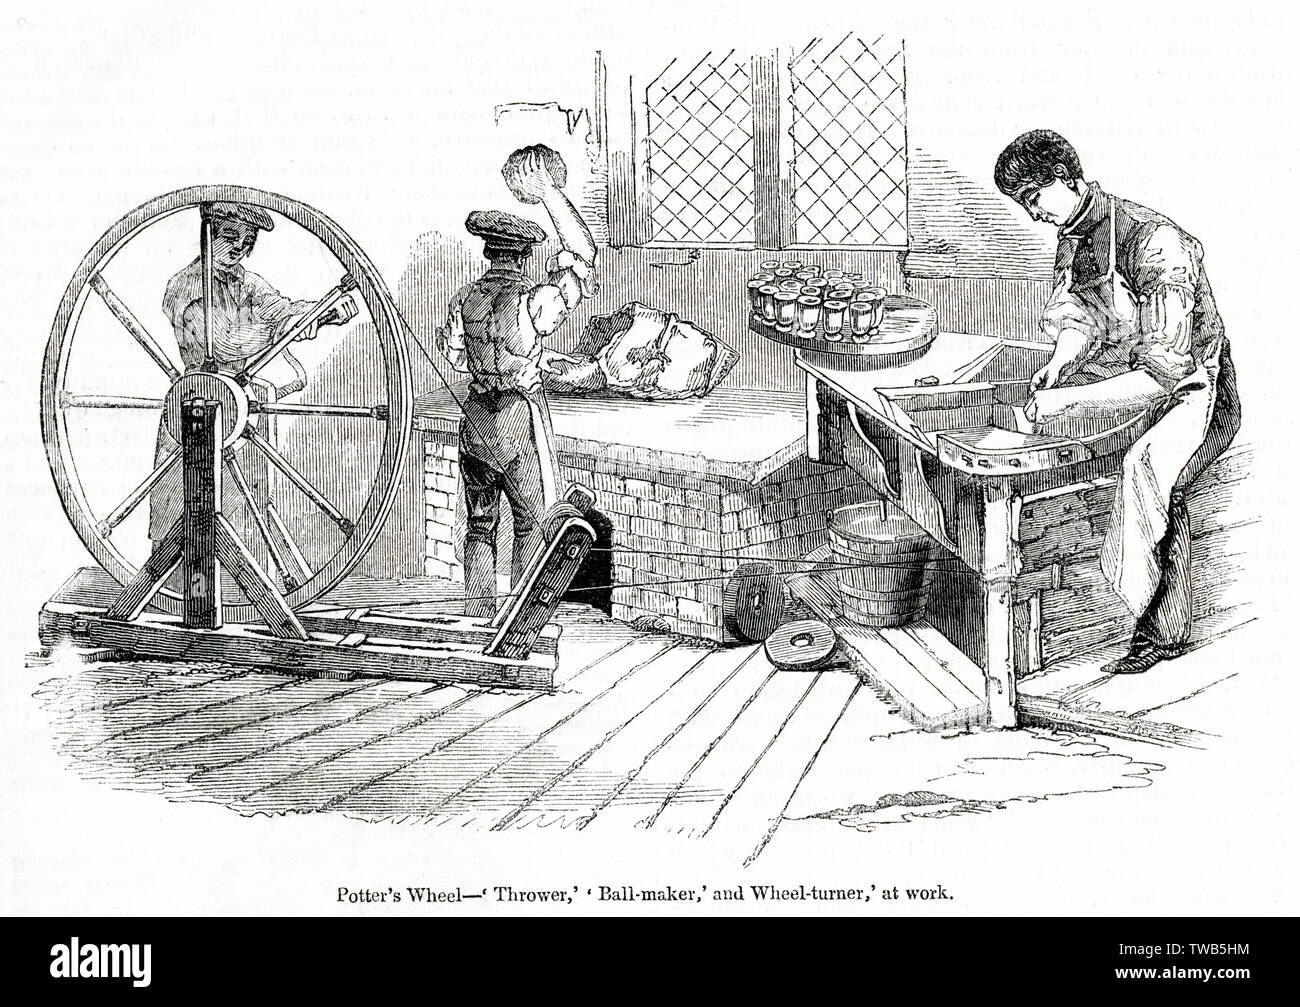 Scene at the Royal Porcelain Works, Worcester -- a potter's wheel, with a thrower, ball maker and wheel turner at work.      Date: 1843 - Stock Image